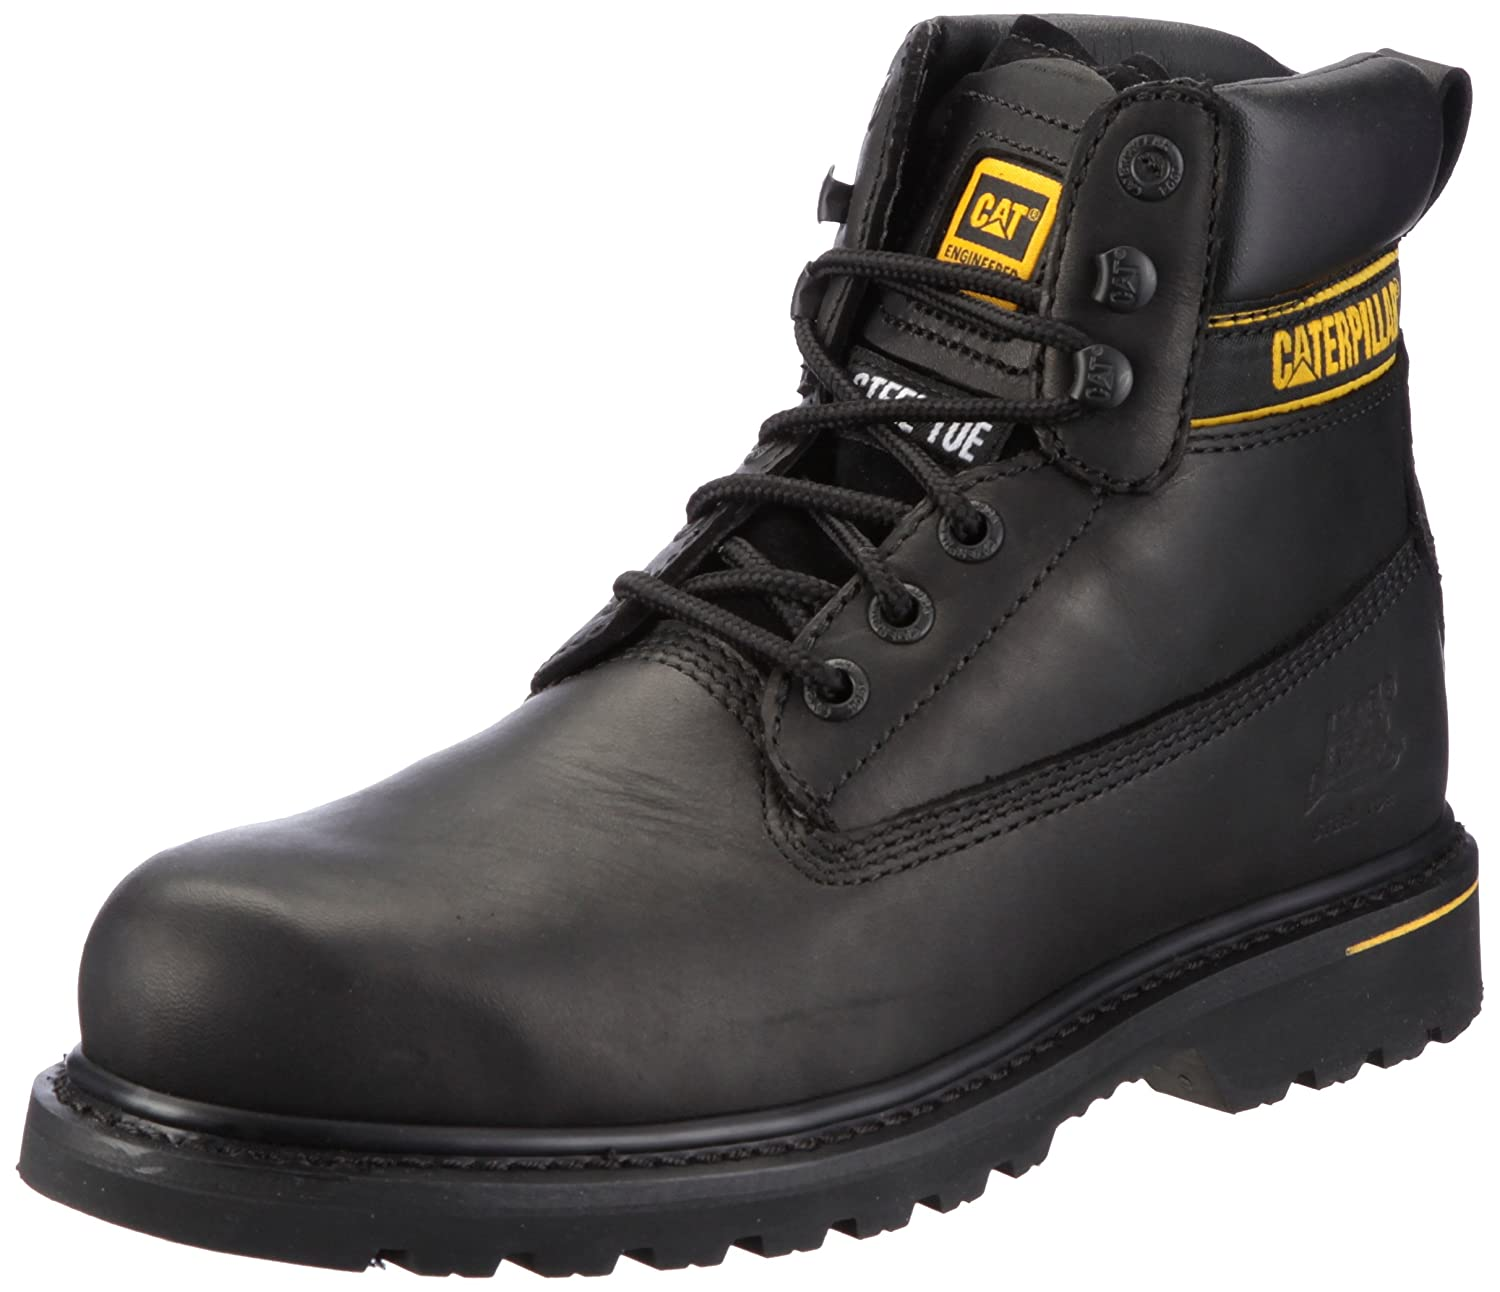 Caterpillar Holton, Men's Work and Safety Boots: Amazon.co.uk ...